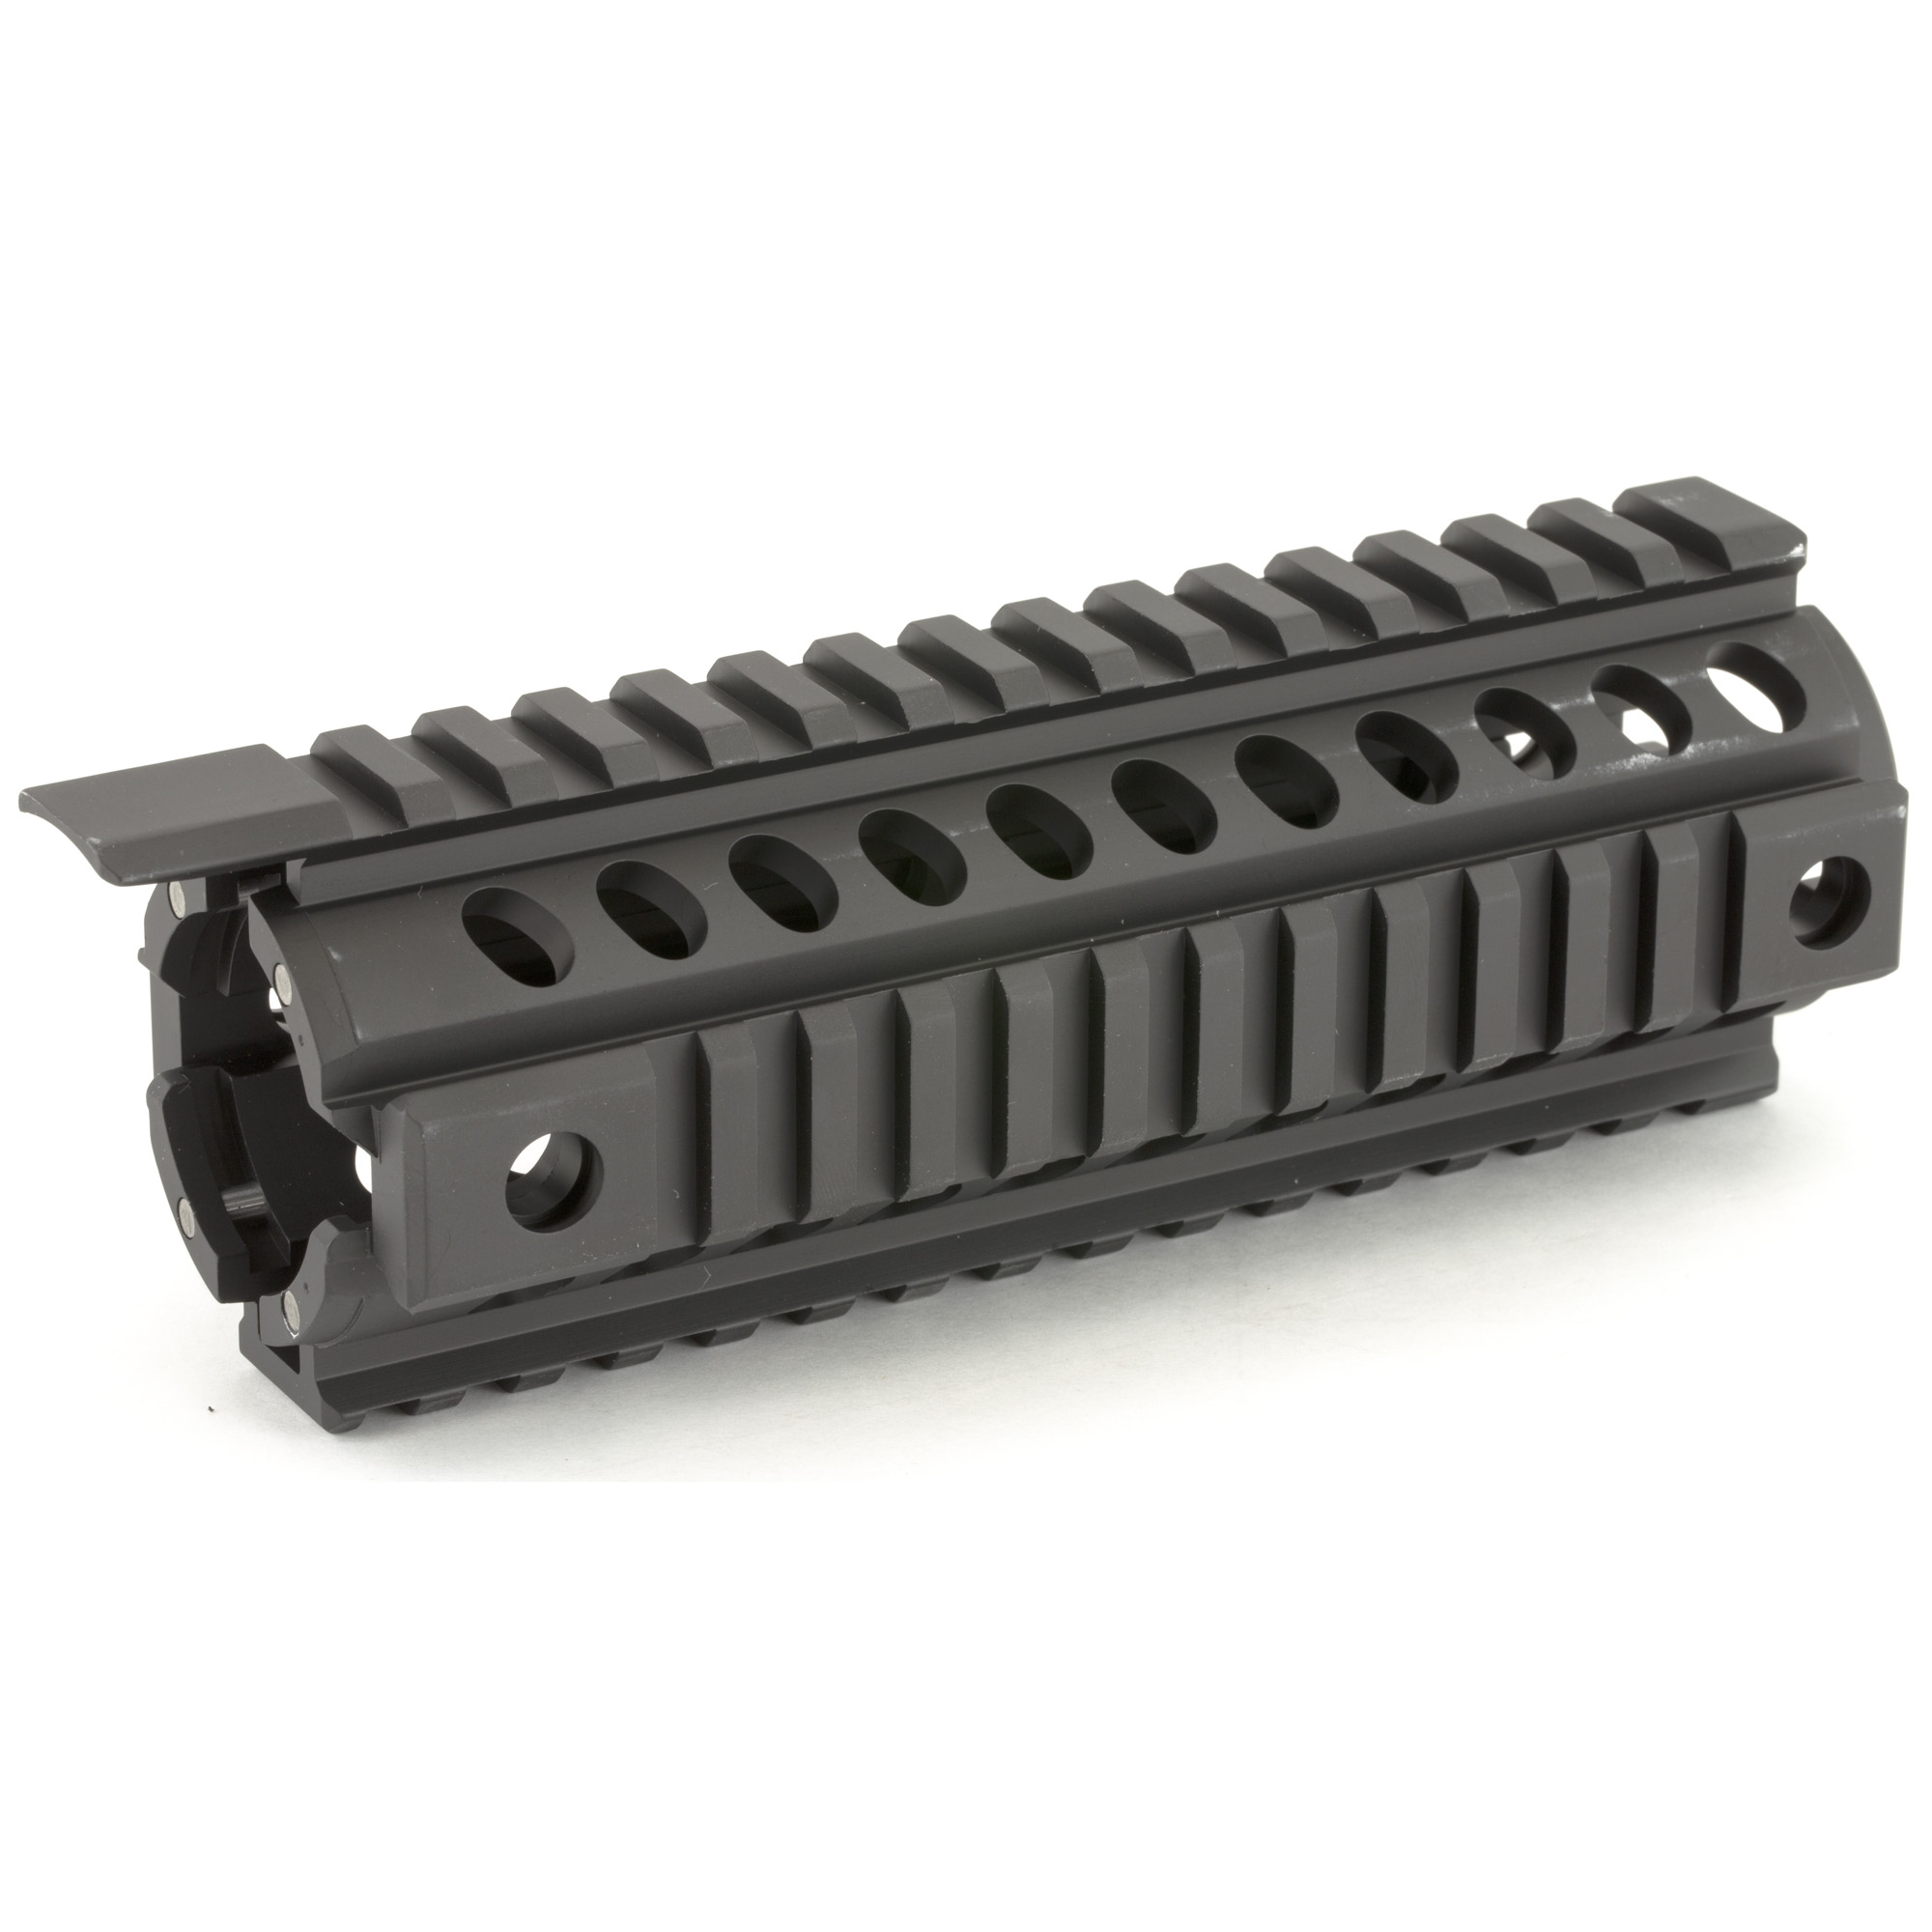 """The Tekko Metal AR15 Carbine Rail System replaces the plastic factory handguard in minutes and requires no gunsmithing or special installation tools. Drop in"""" screw less"""" installation means no permanent alterations need be made to the rifle. The unit is held in place by the Delta ring and handguard cap. Four MIL-STD Picatinny Rails provide secure mounting for rail attachments and accessories such as vertical grips"""" lights"""" lasers"""" bipods and other rail mounted kit. Monolithic style continuous top rail eliminates the gap between the receiver and rail. Four QD mounts"""" two on each side for push button sling swivels."""